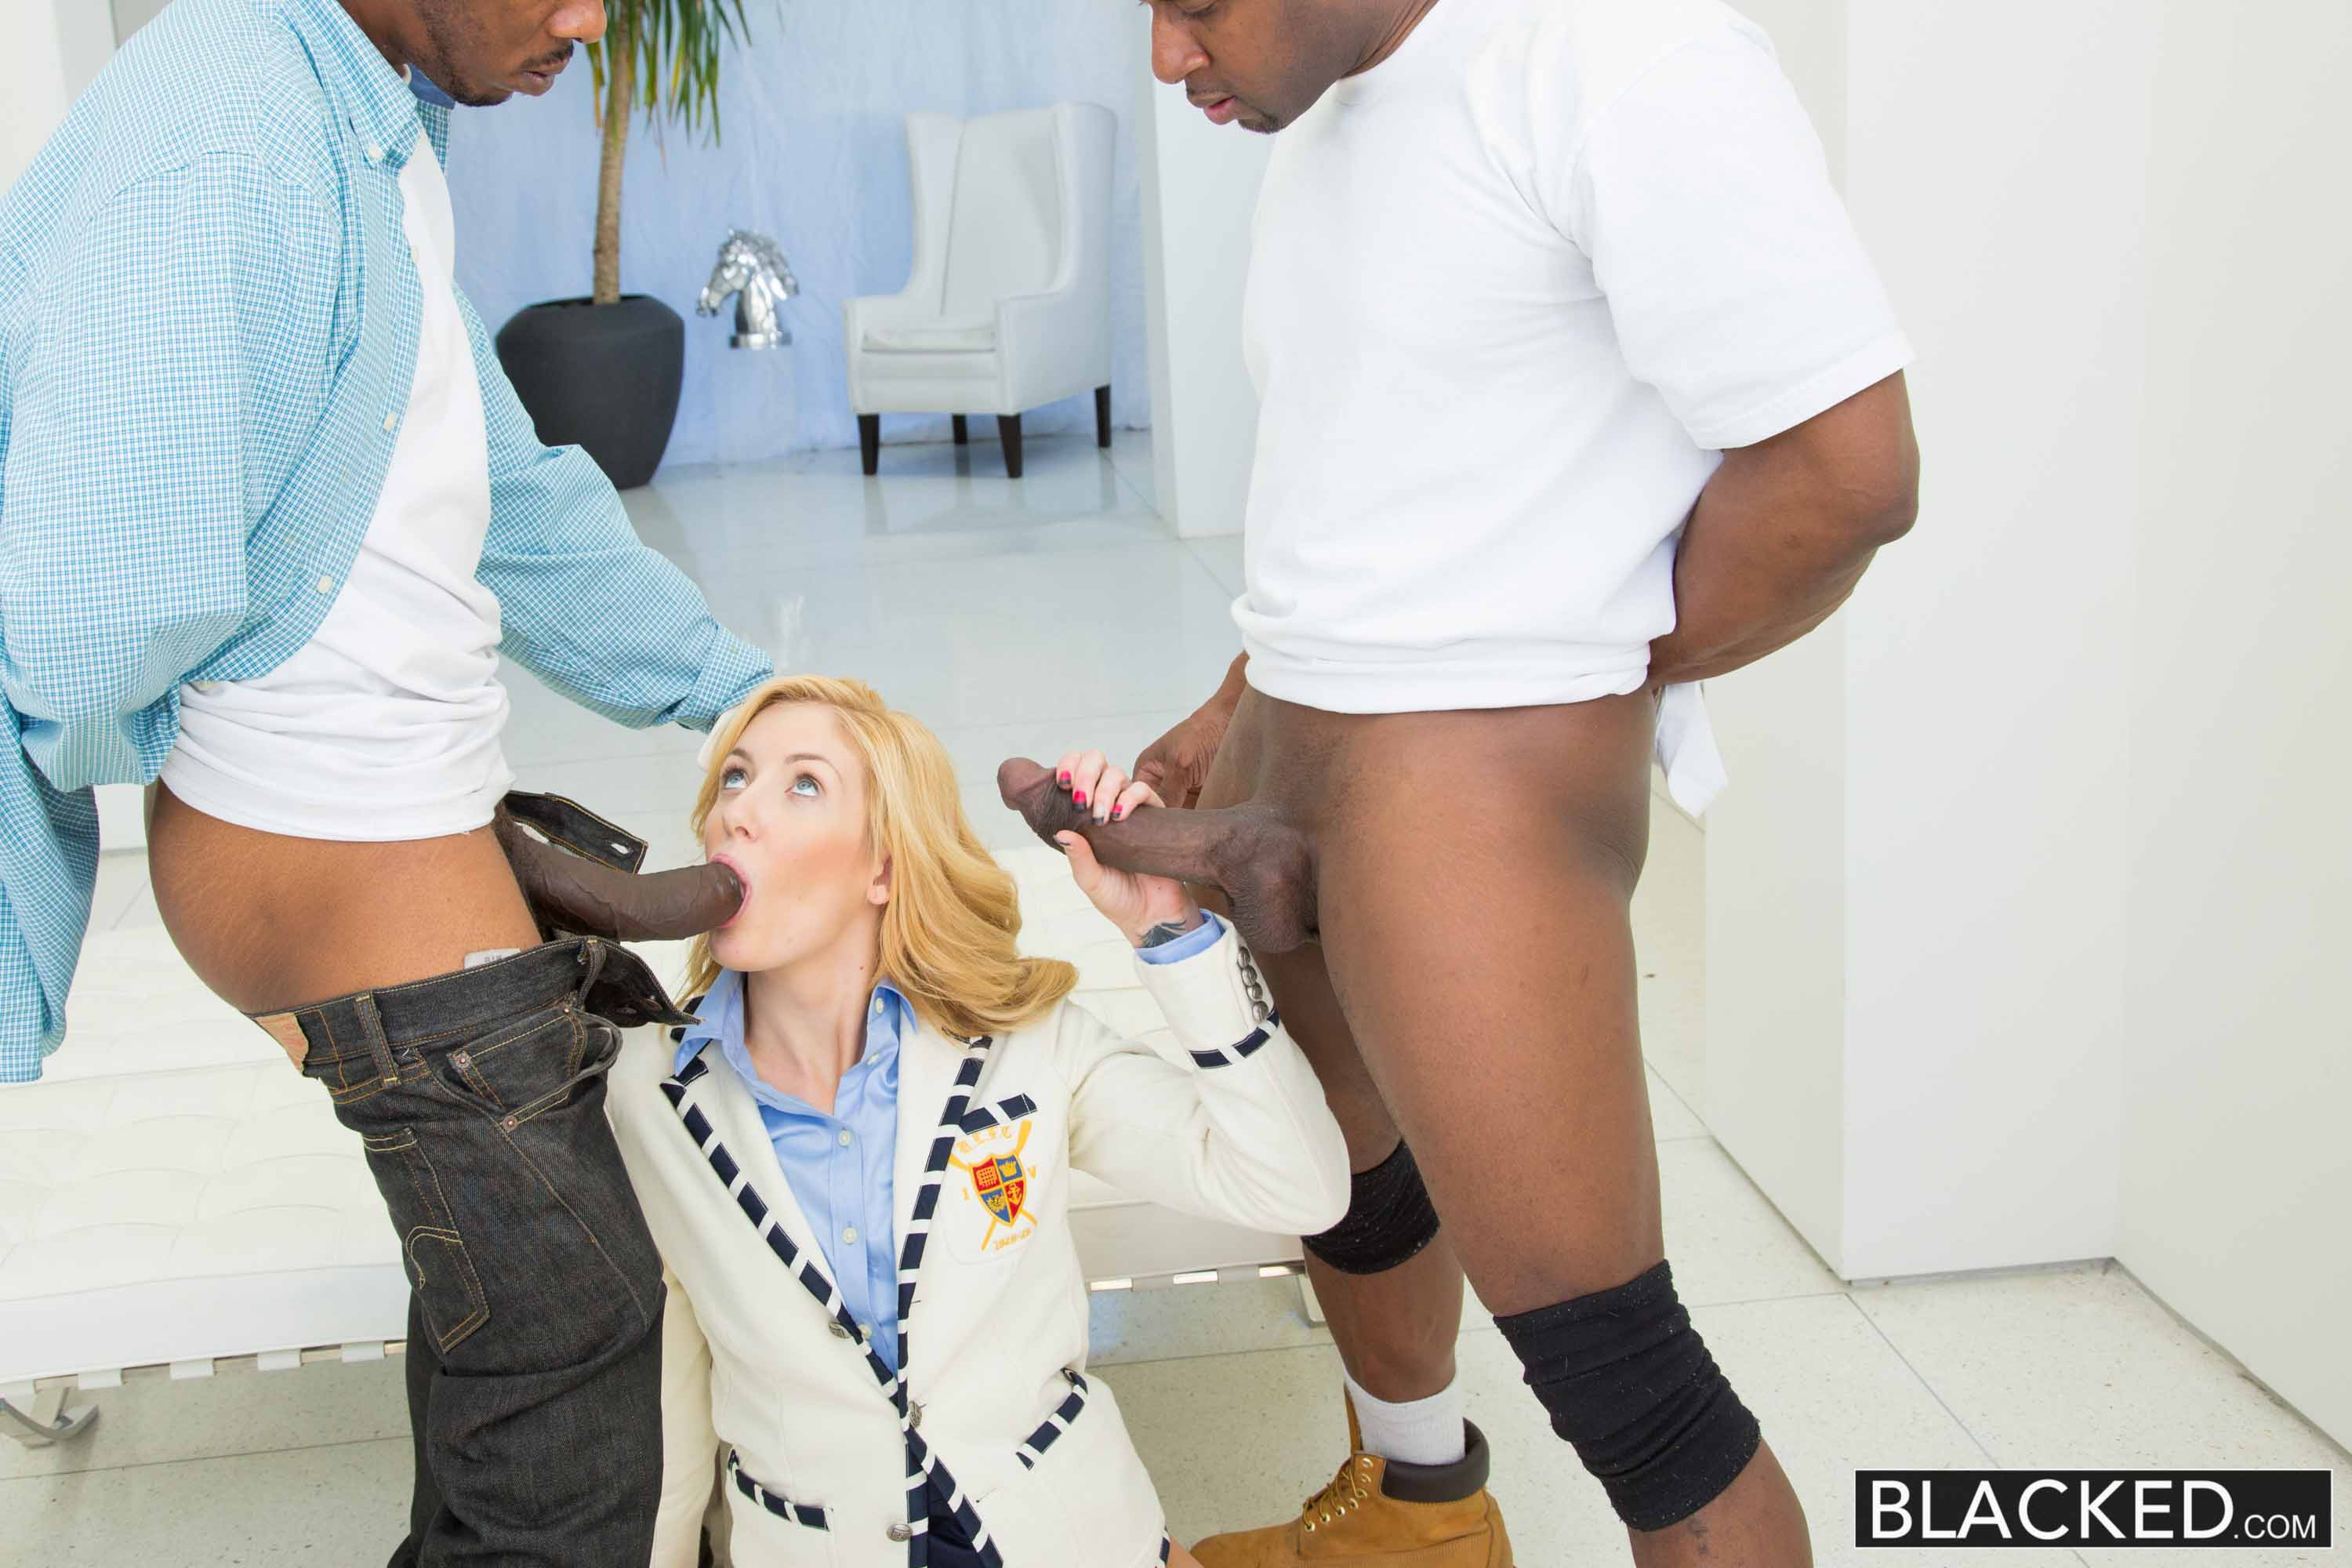 Emily Kae - 2 Big Black Dicks for Rich White Girl. | Picture (15)